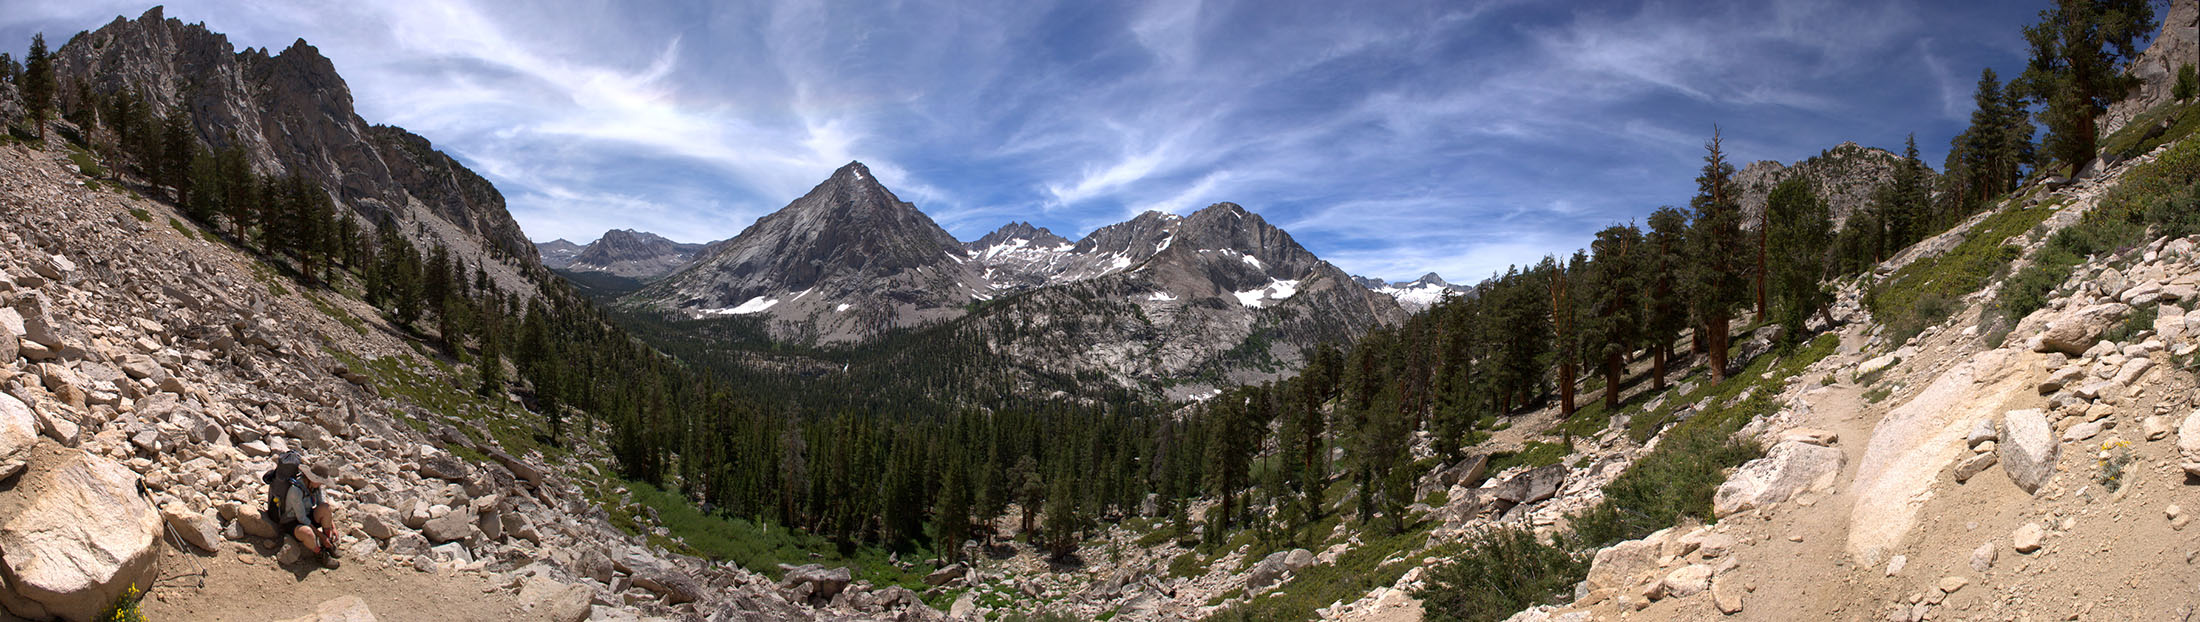 Above Vidette Meadows